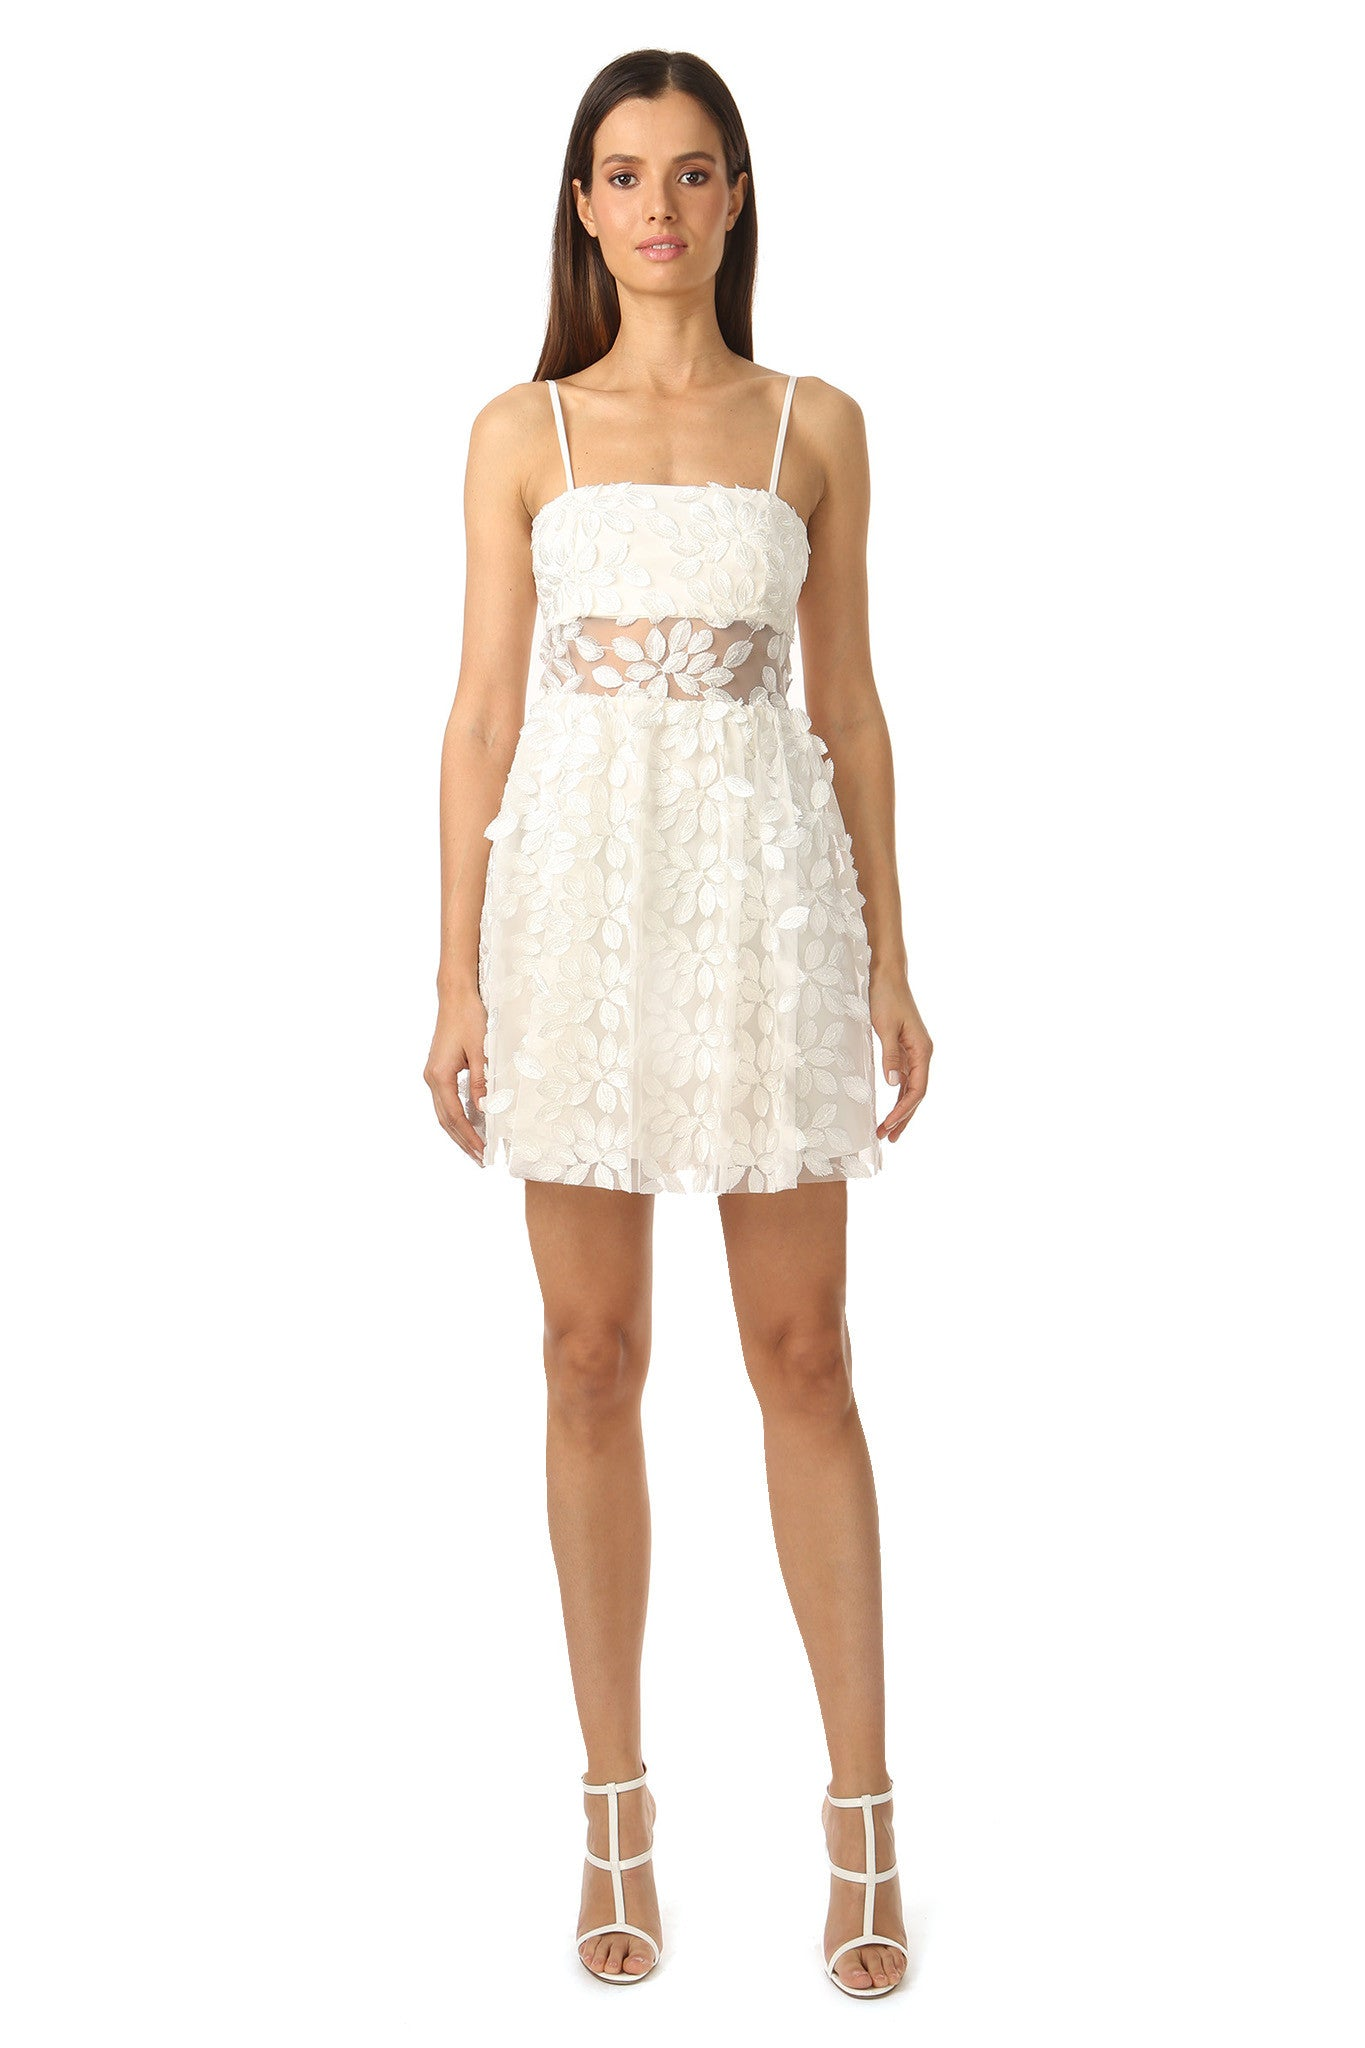 Jay Godfrey White Floral Embroidery Dress - Front View